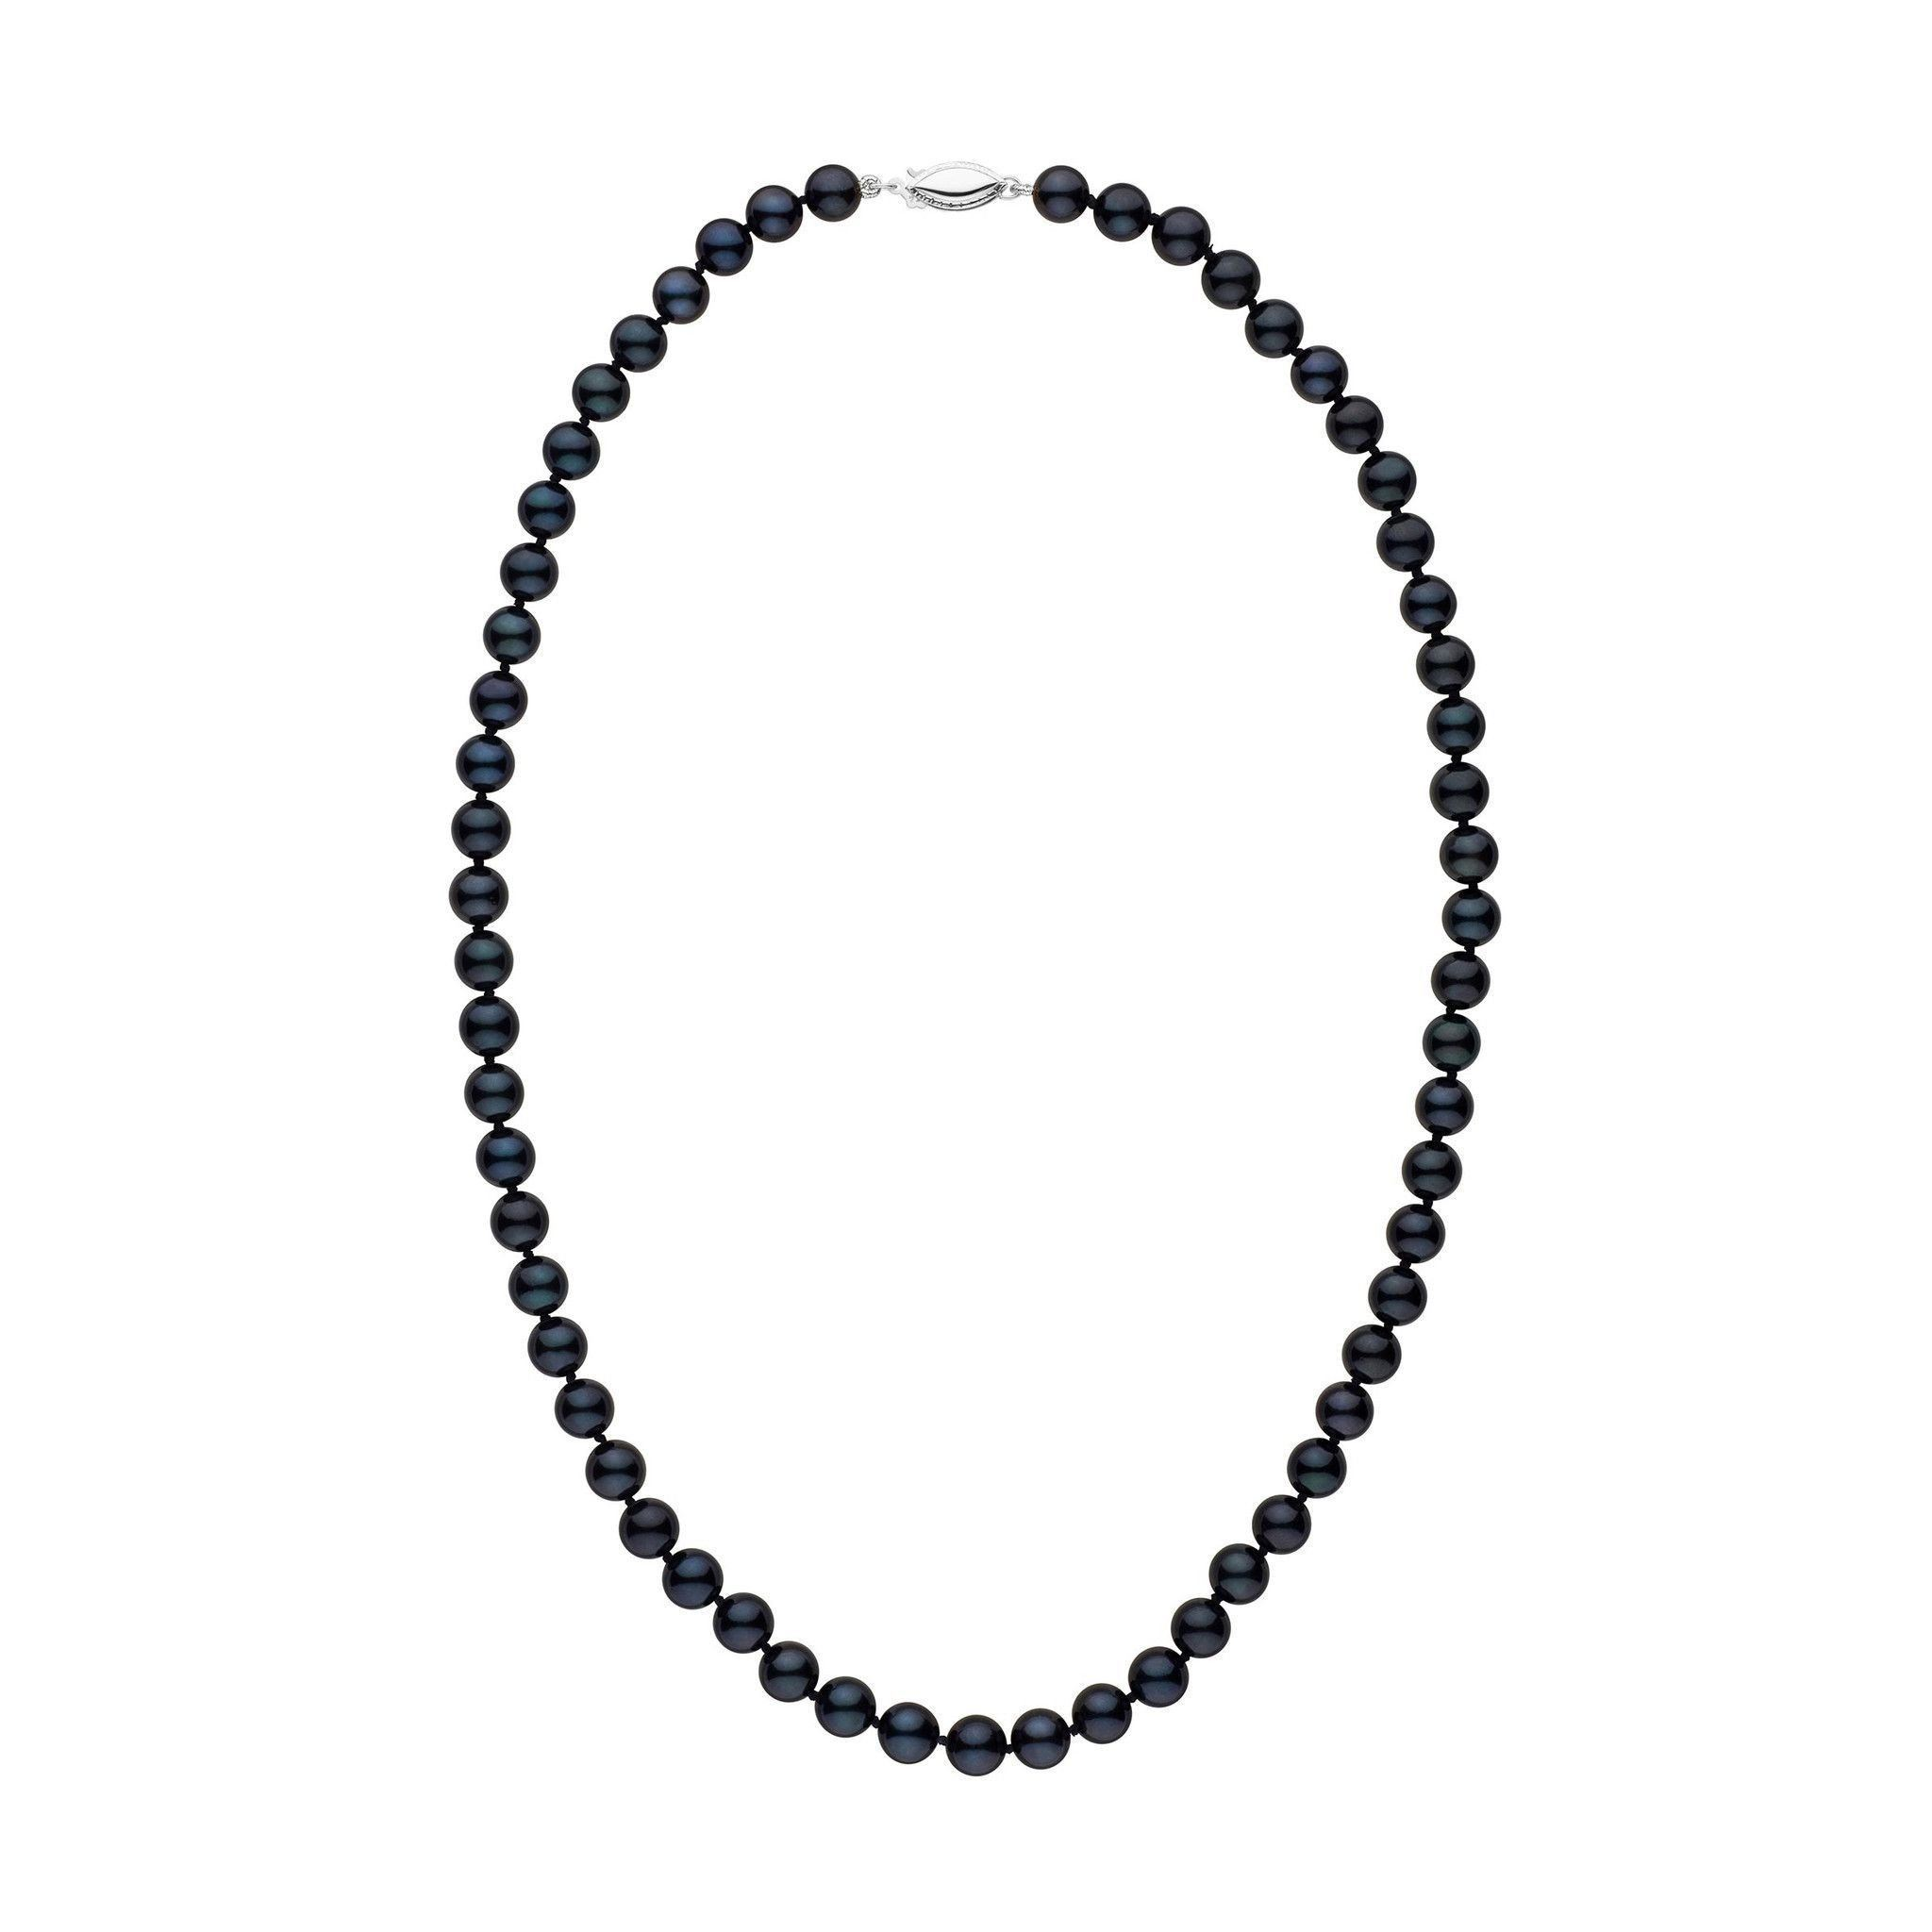 6.5-7.0 mm 18 inch AA+ Black Akoya Pearl Necklace